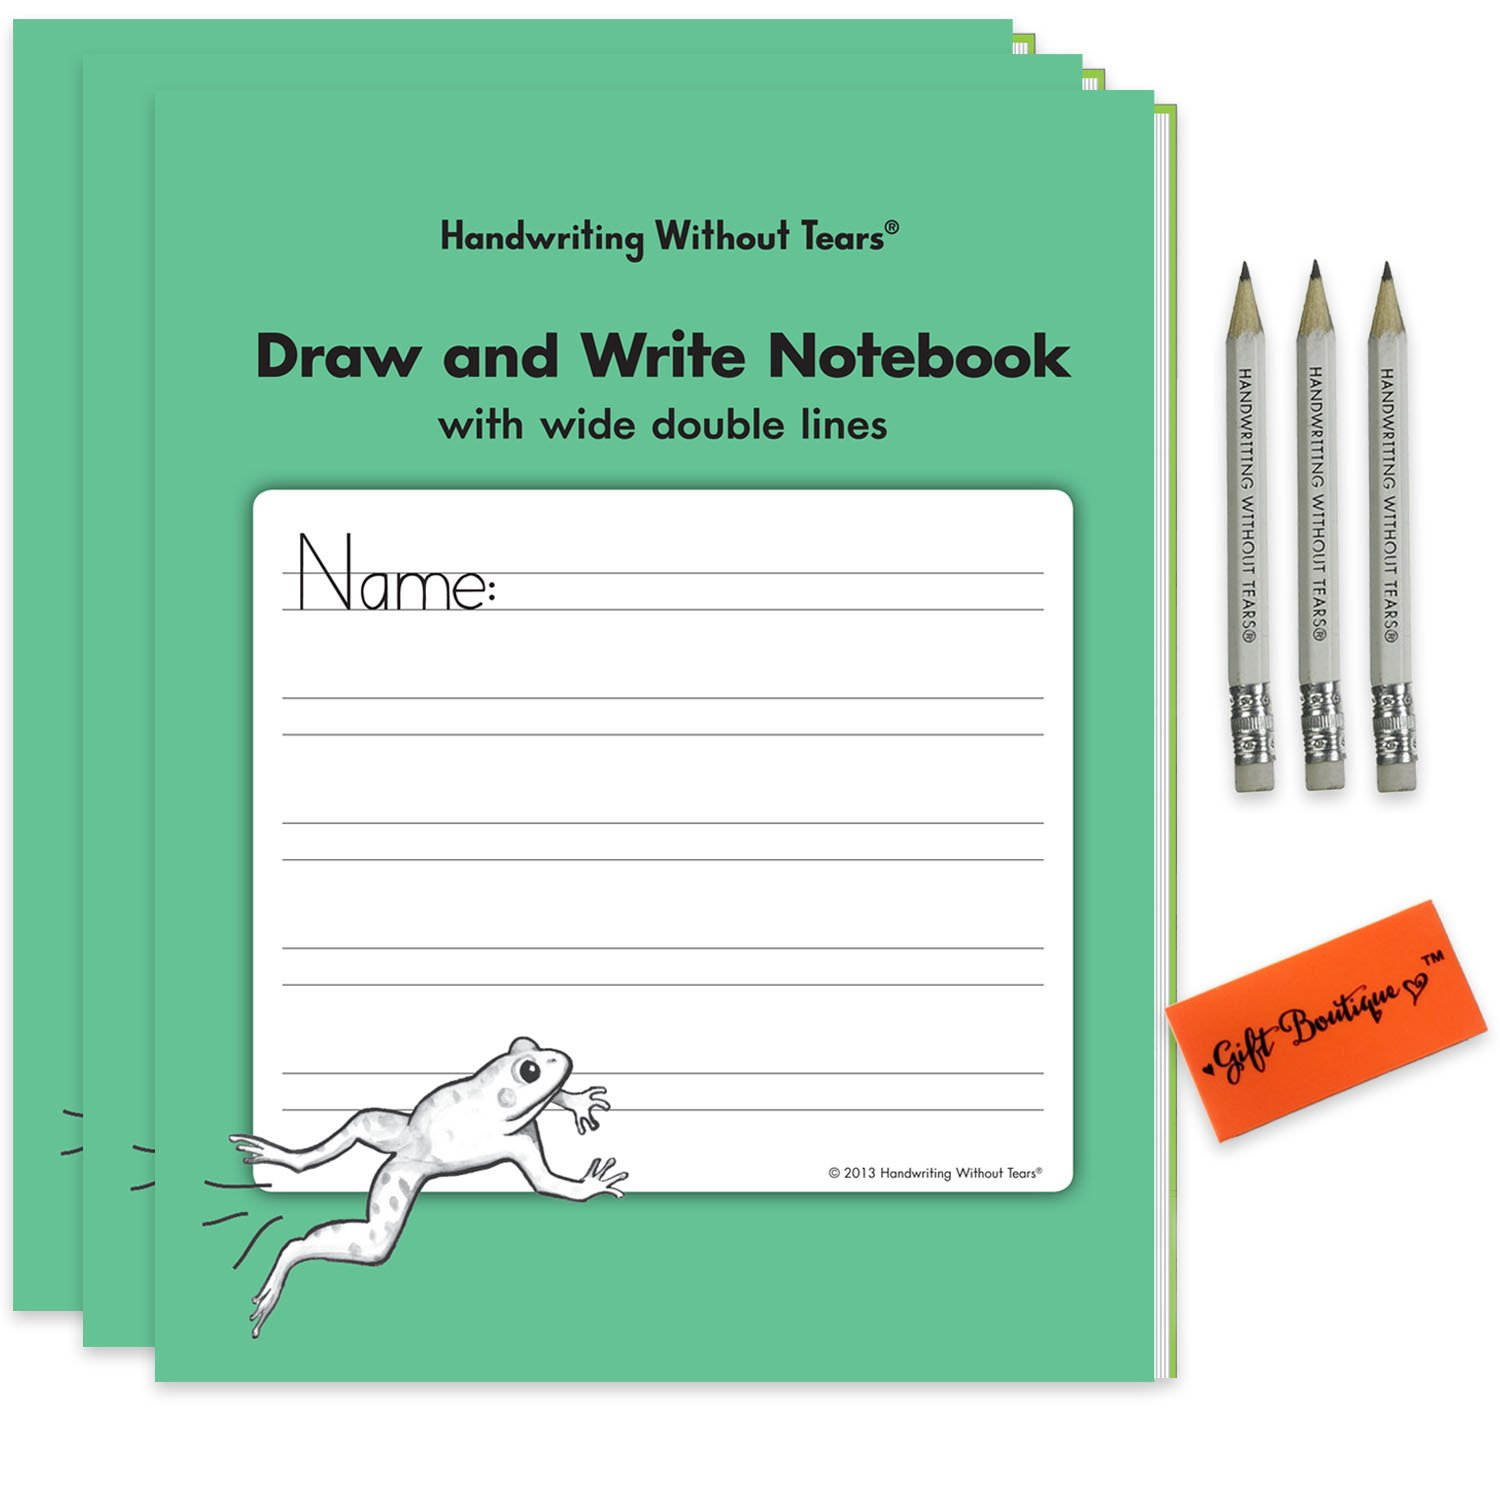 Handwriting Without Tears Writing- Draw and Write English Notebook- With Wide Double Lines Children Award Winning Learning Activities For Students + Bonus Pencil For Little Hands +Gift Boutique Eraser